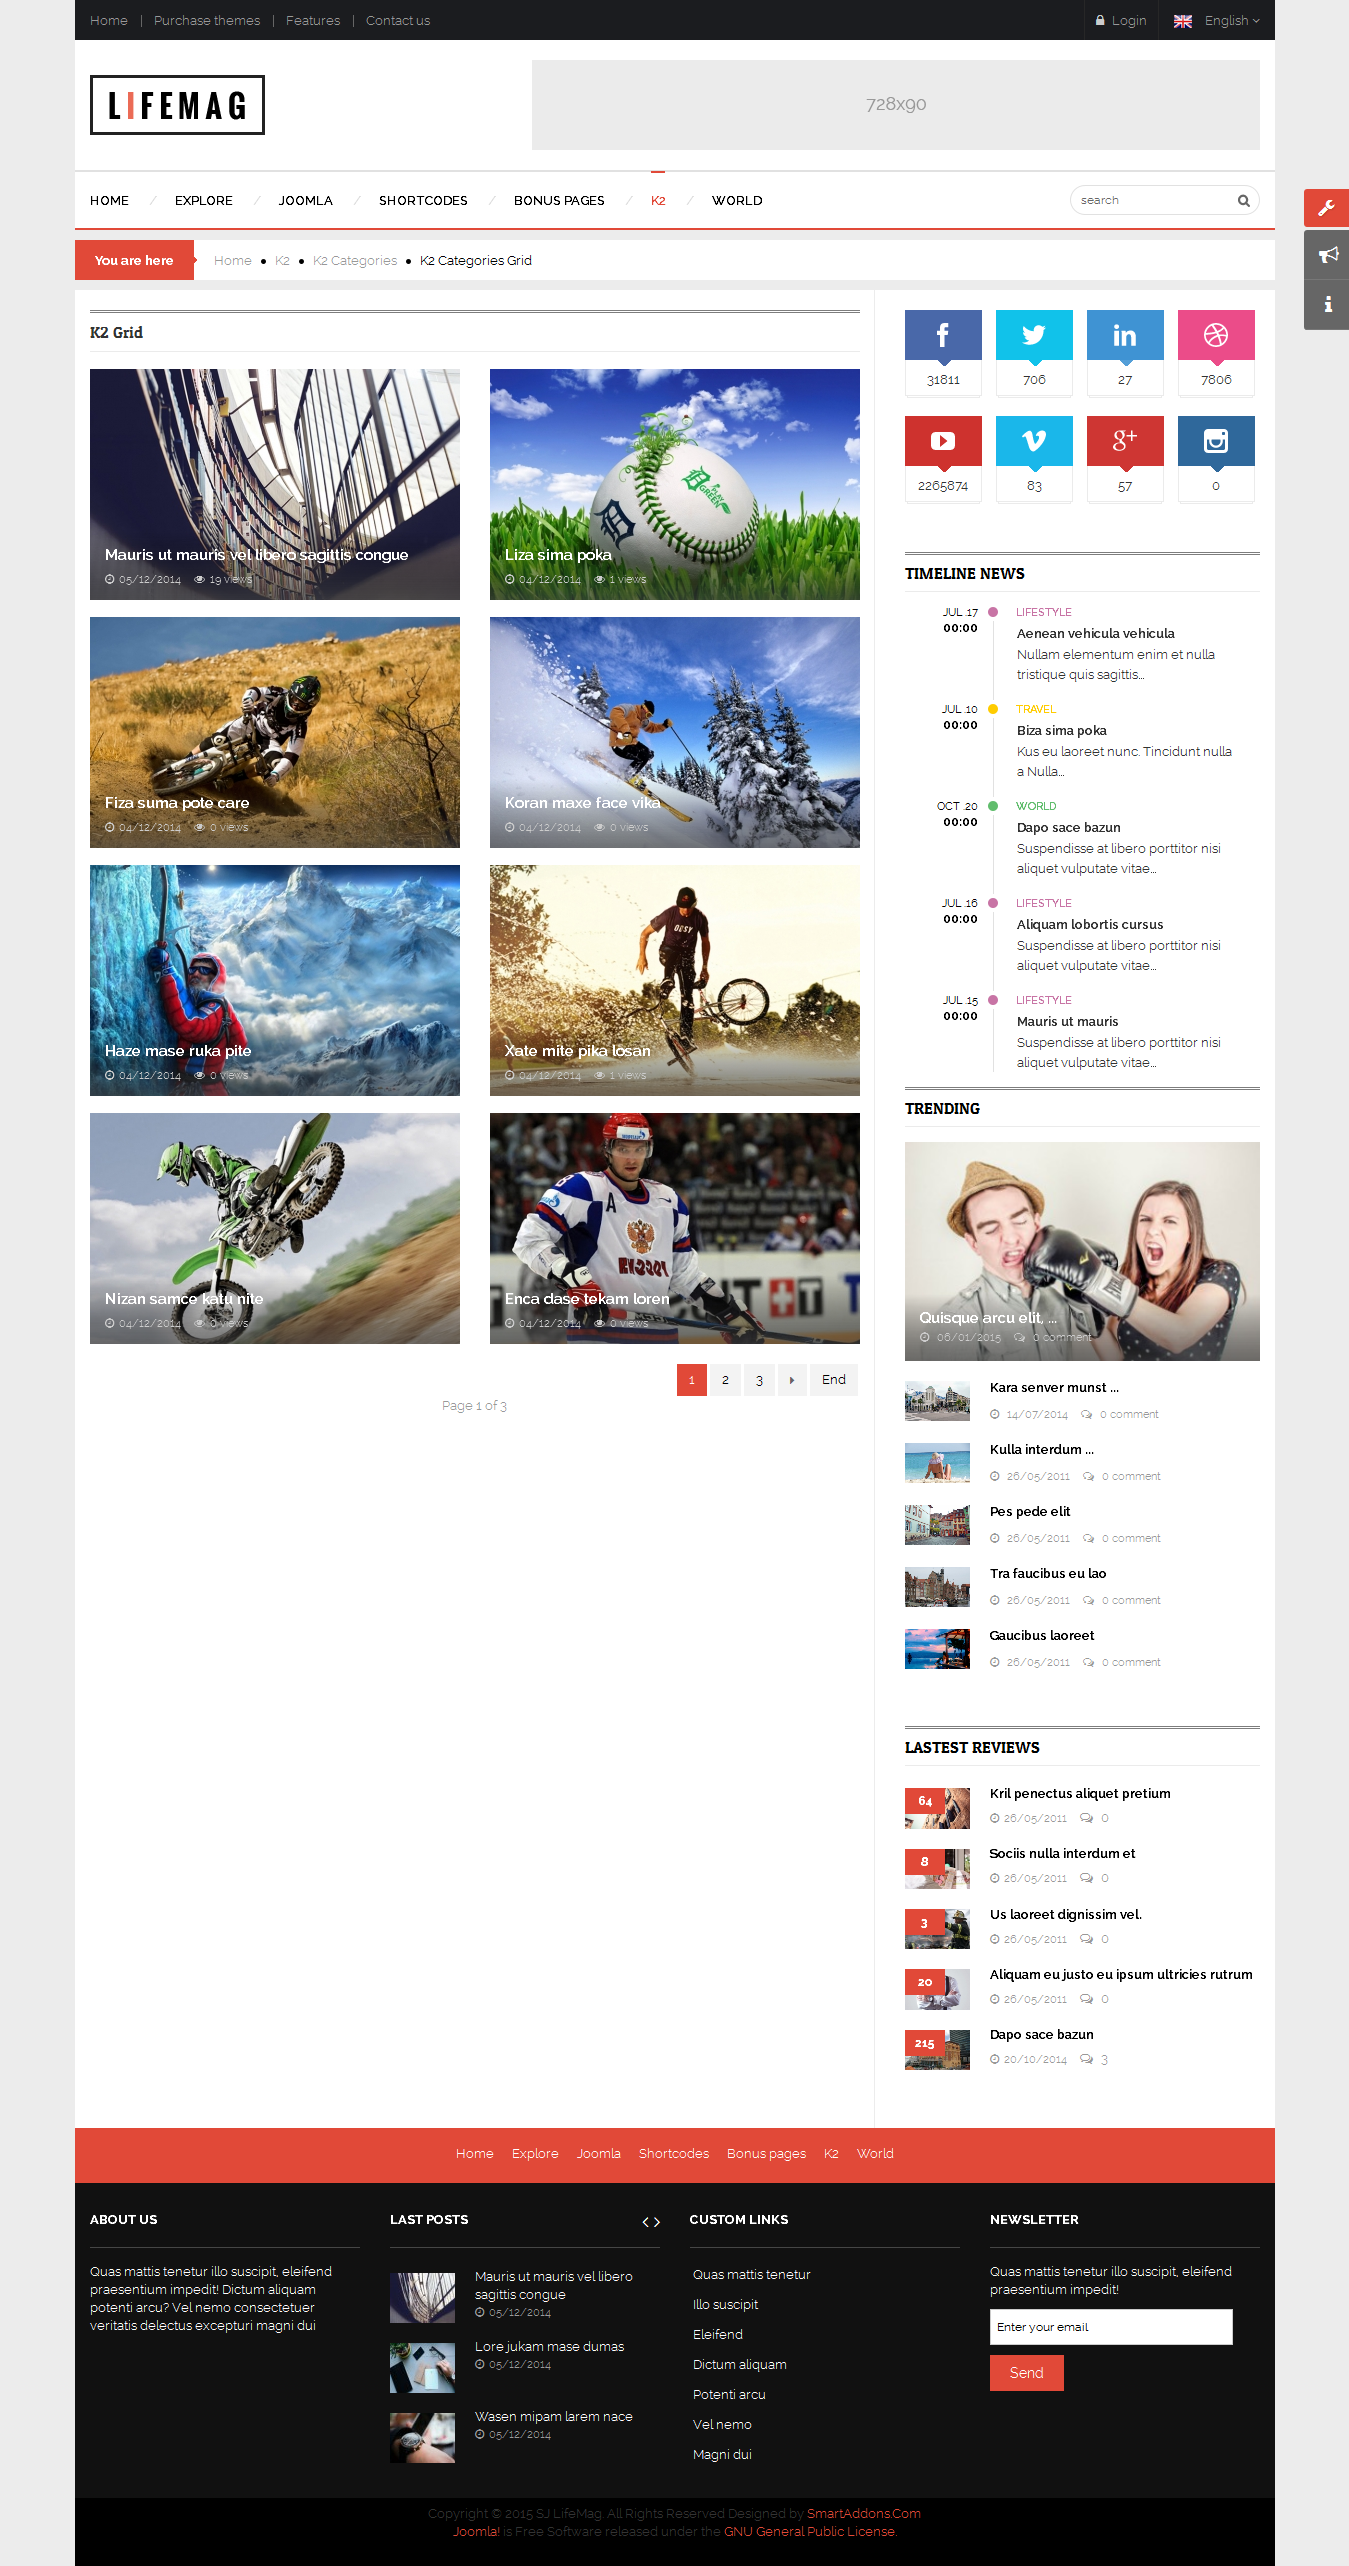 SJ LifeMag - Responsive Joomla News Magazine Template - 04_k2-cat-grid.png